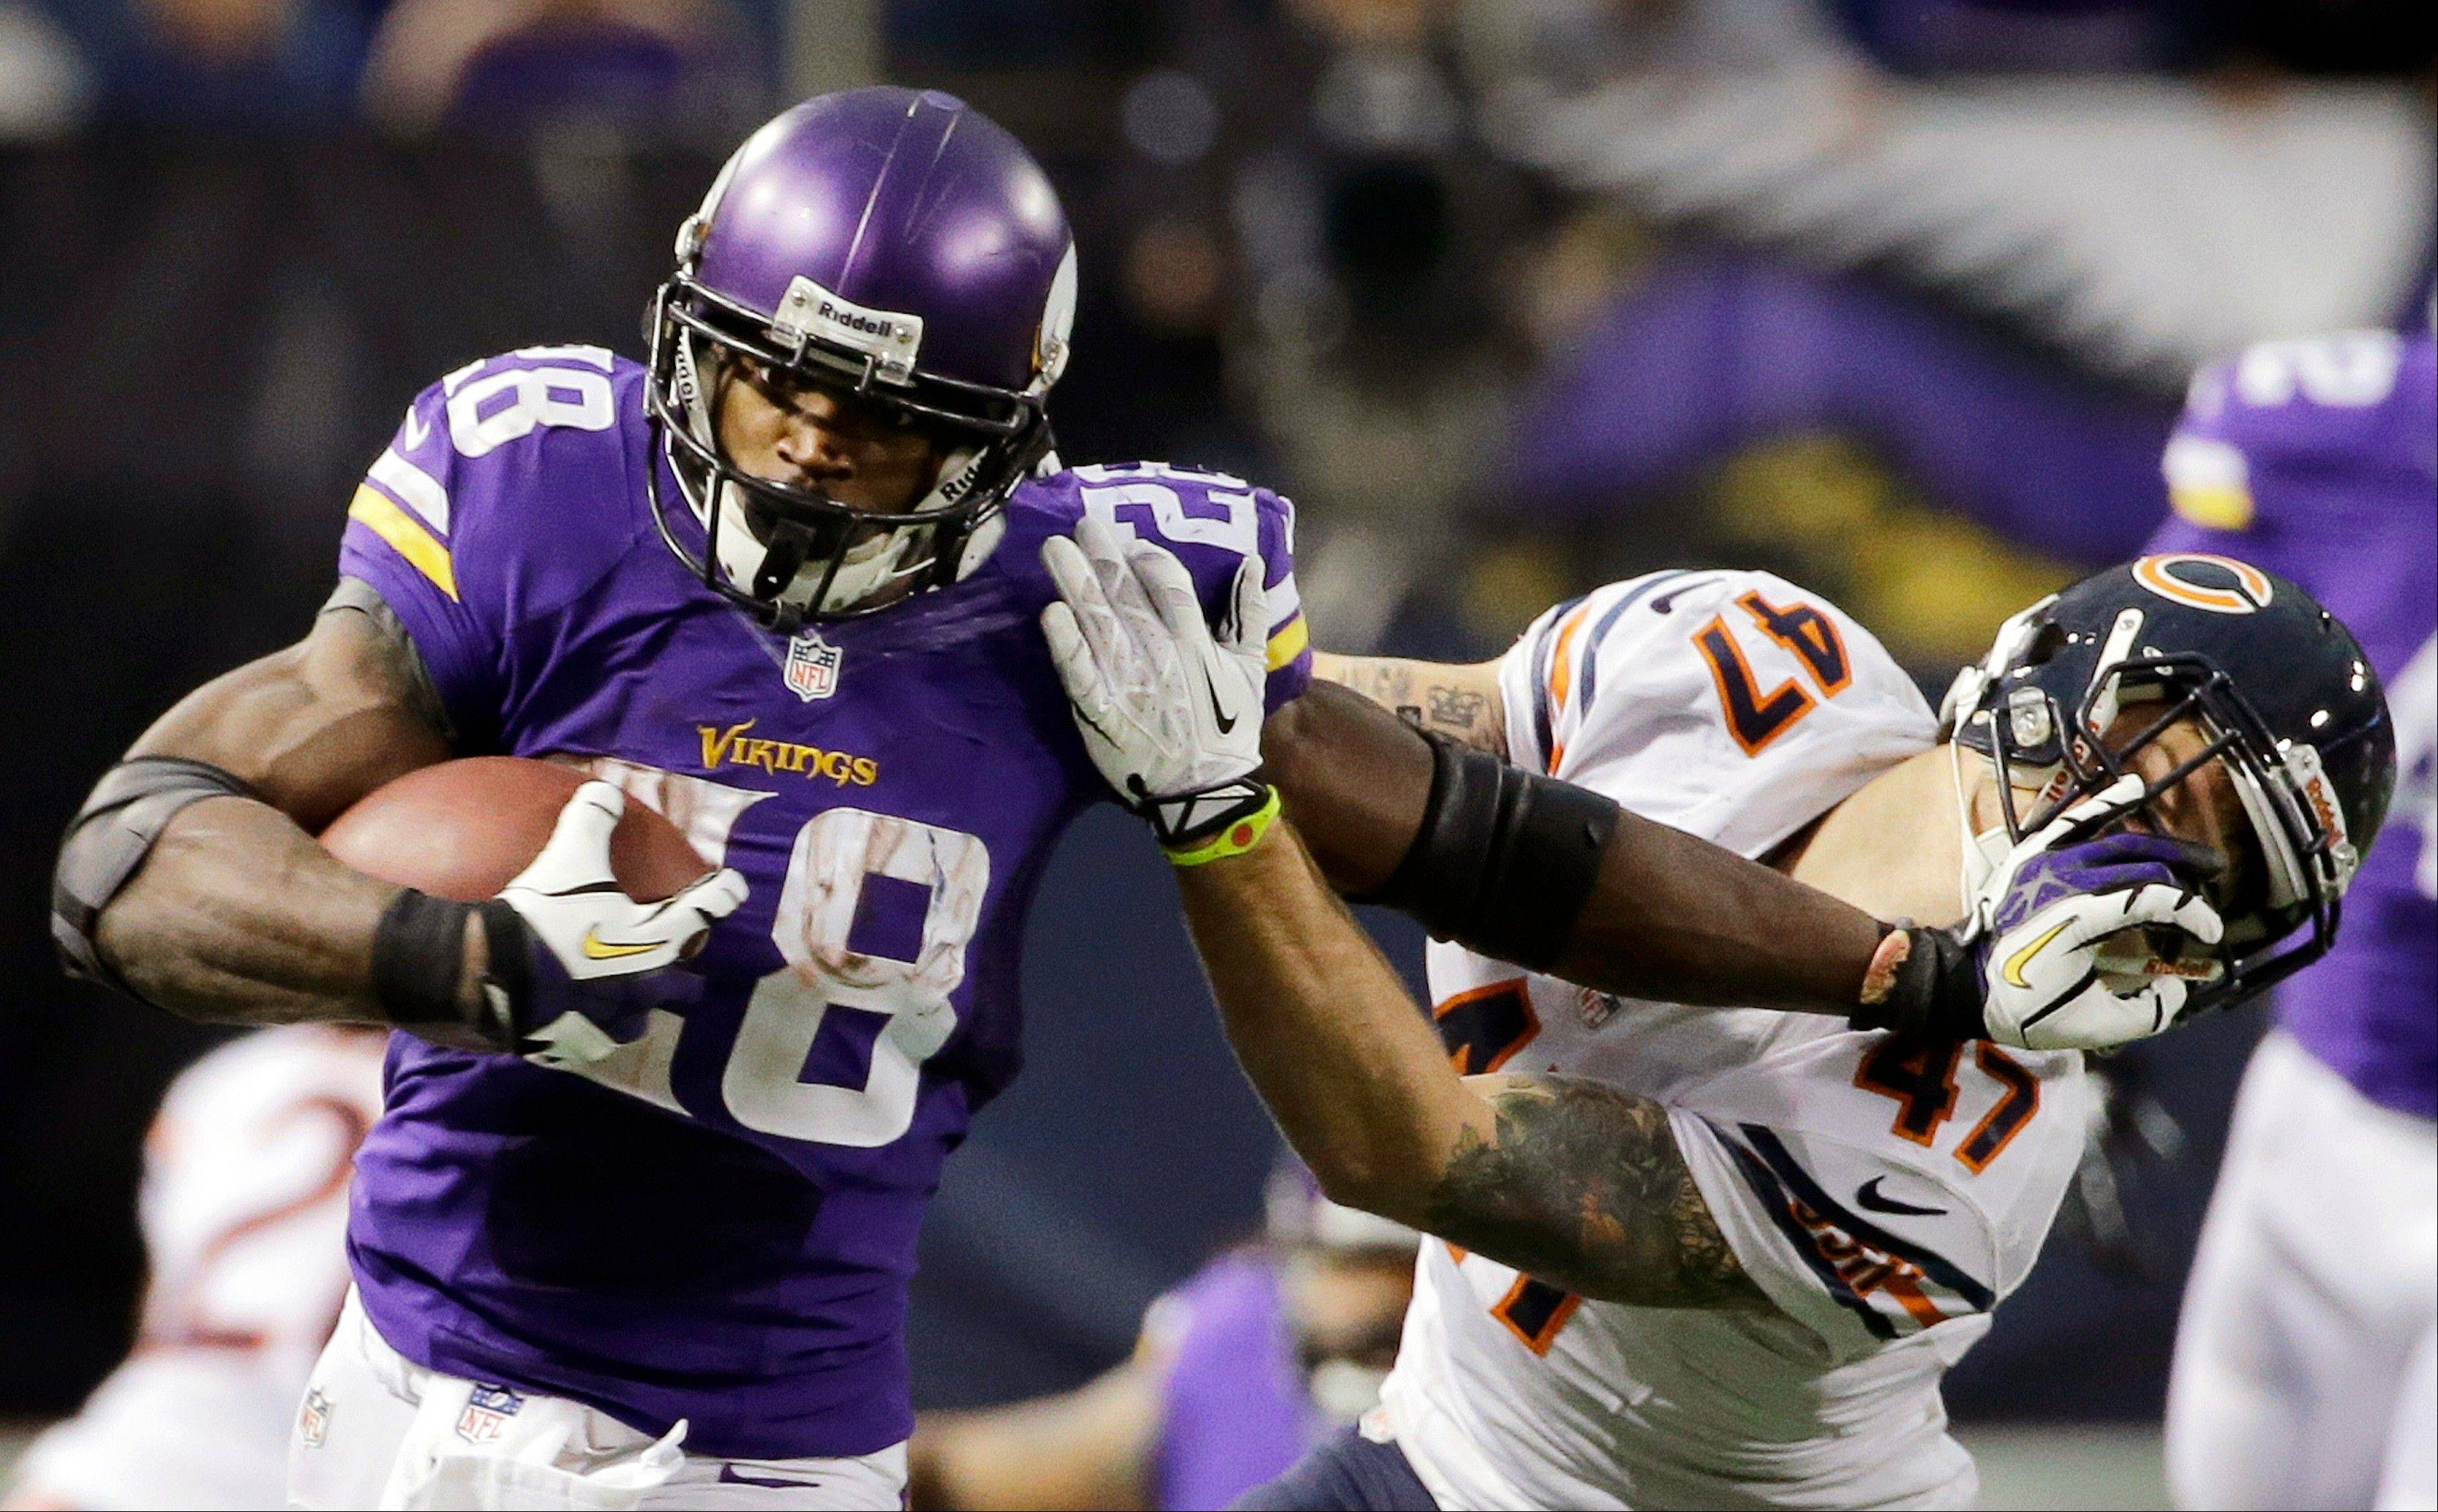 Minnesota Vikings running back Adrian Peterson, left, tries to break a tackle from Chicago Bears free safety Chris Conte during the fourth quarter.